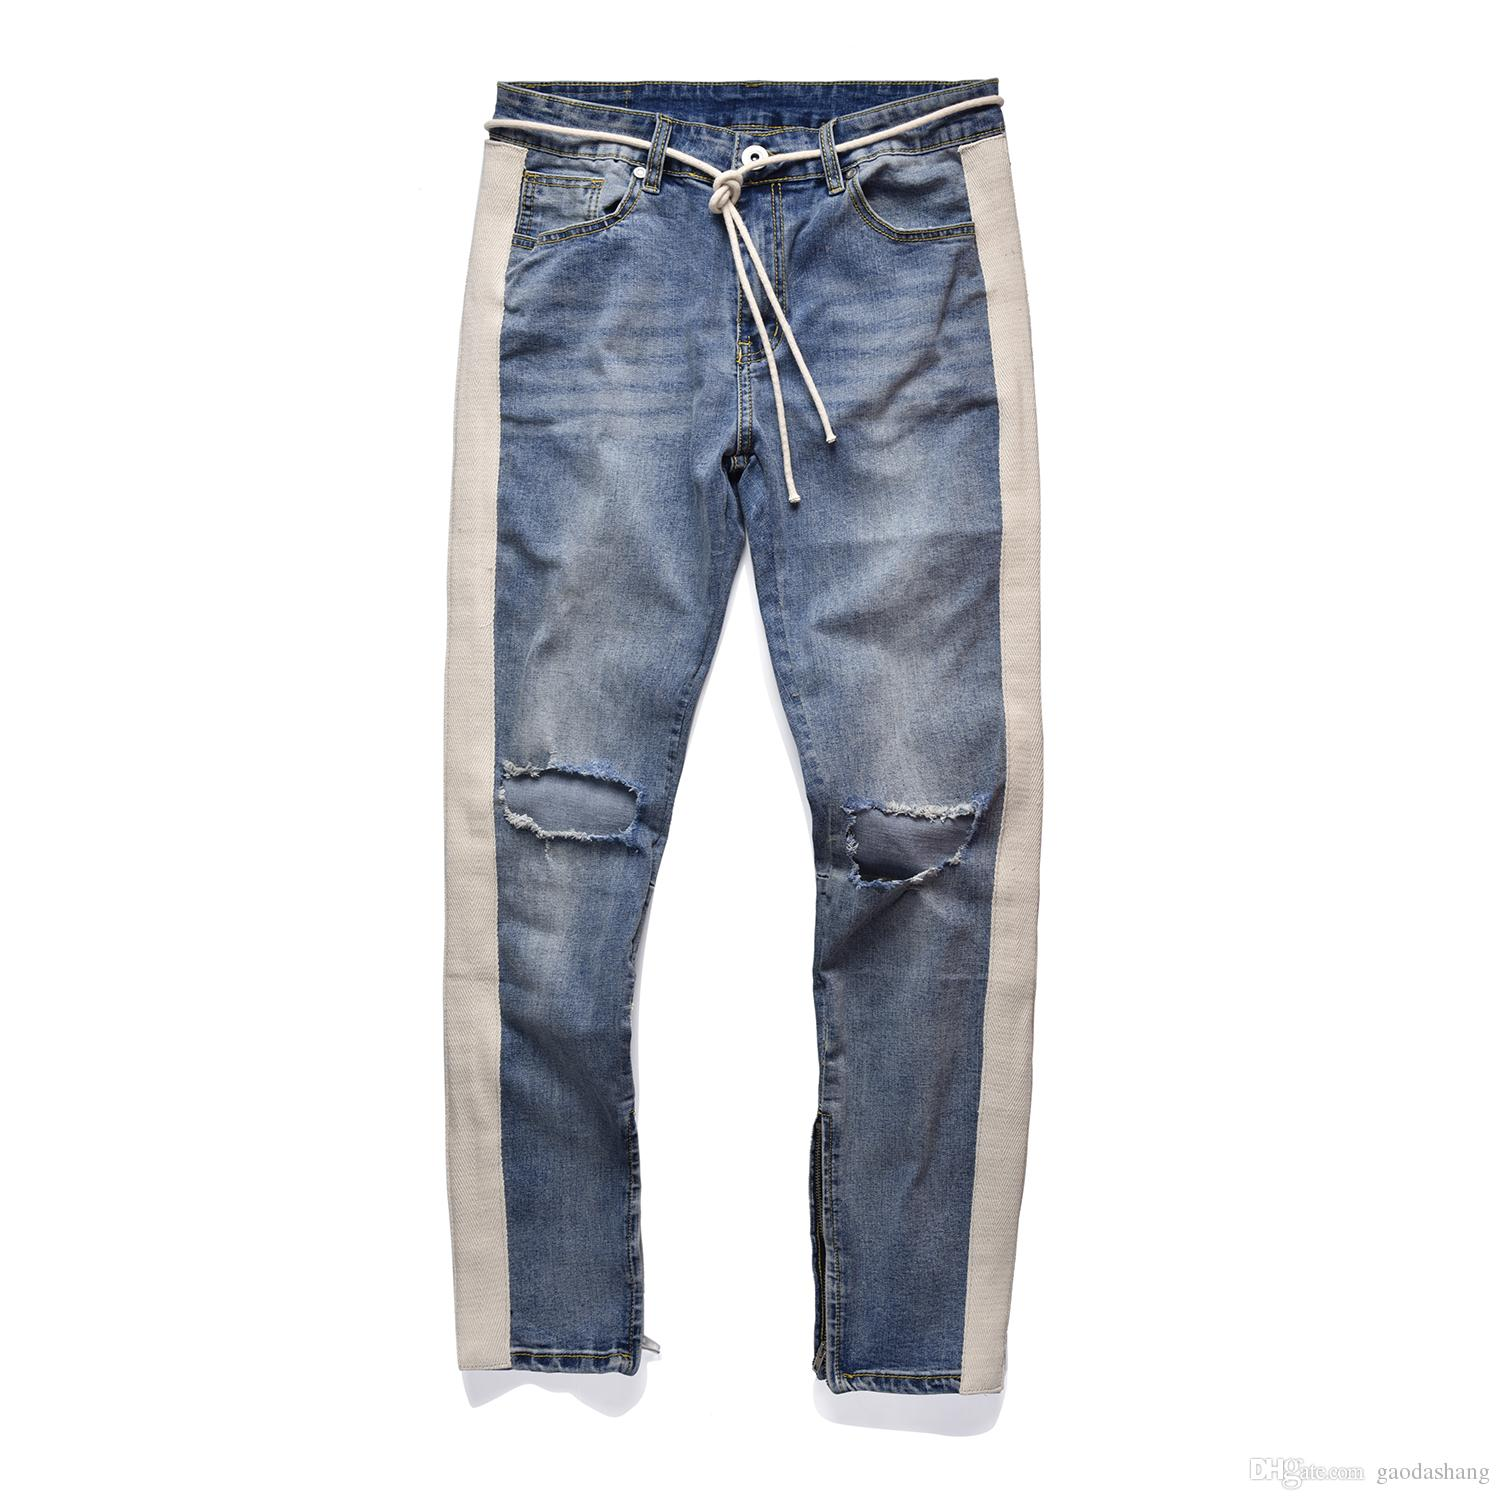 2018 NEW Fashion Hip Hop Ripped Destroyed men Hole jeans Biker White stripe stitching Bottom Side zipper Jeans Black blue 18 style 30-36